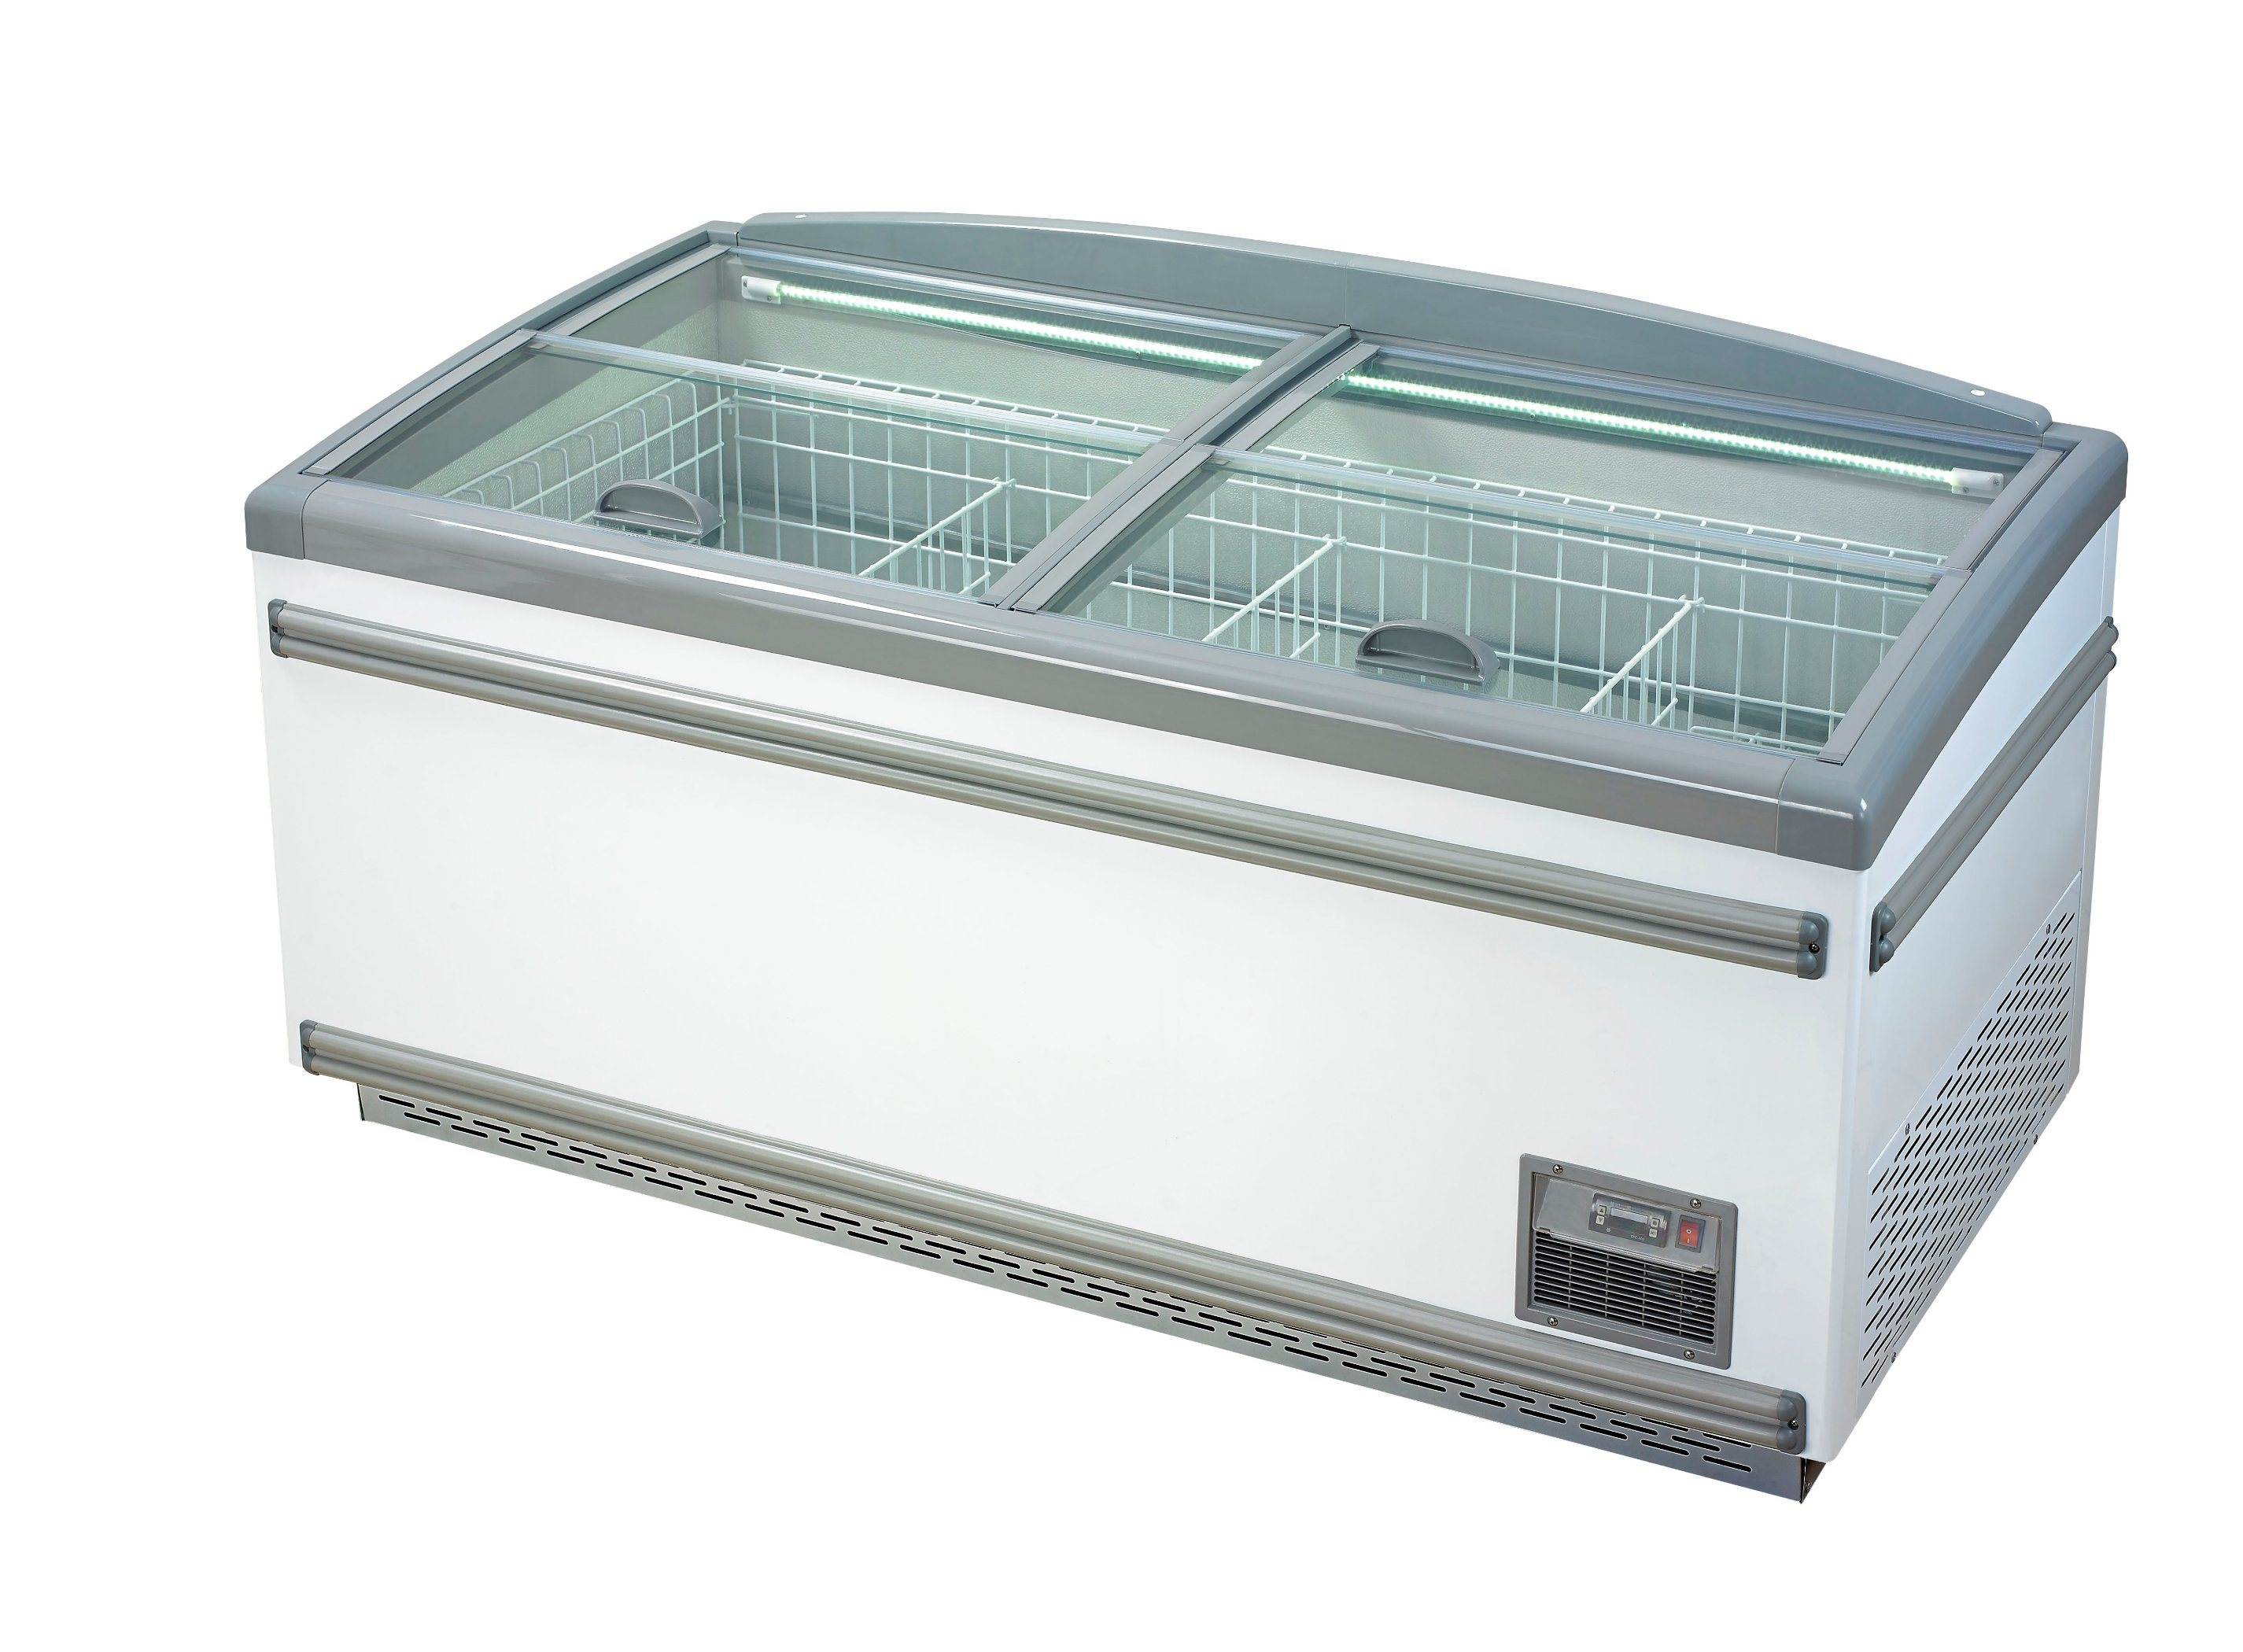 China Frozen Food Ice Ream Island Freezer with Glass Cover - China ...